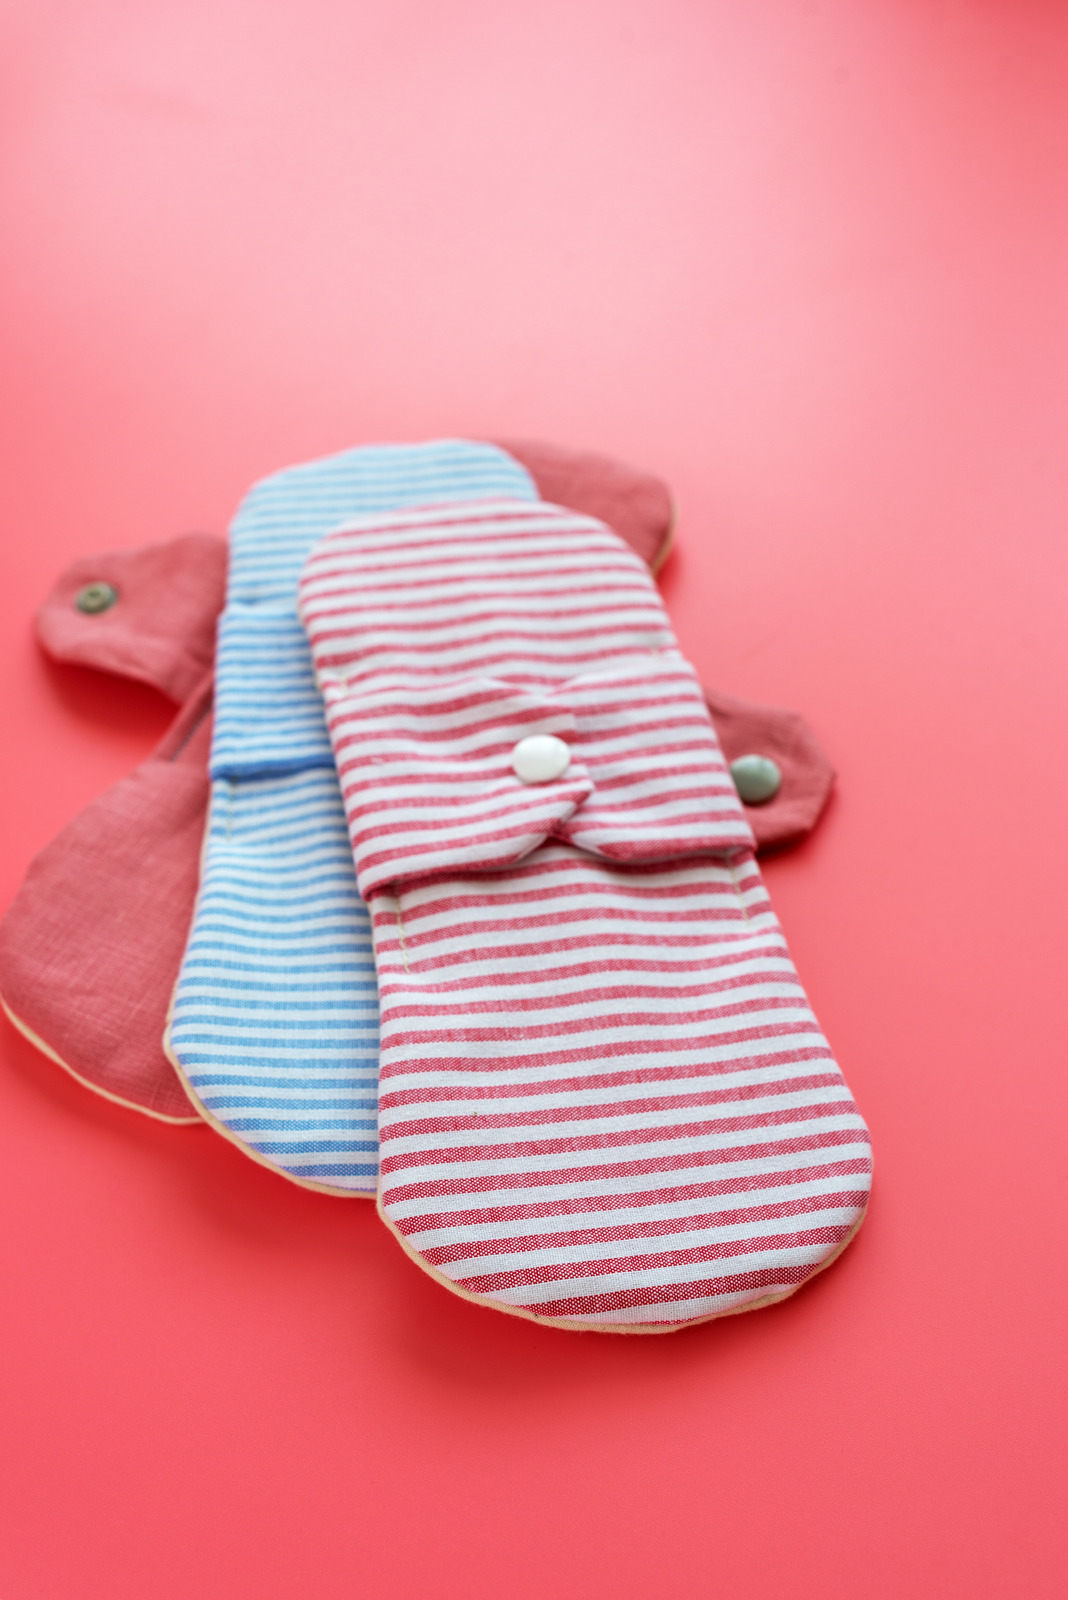 Washable pads. Photo: Canva